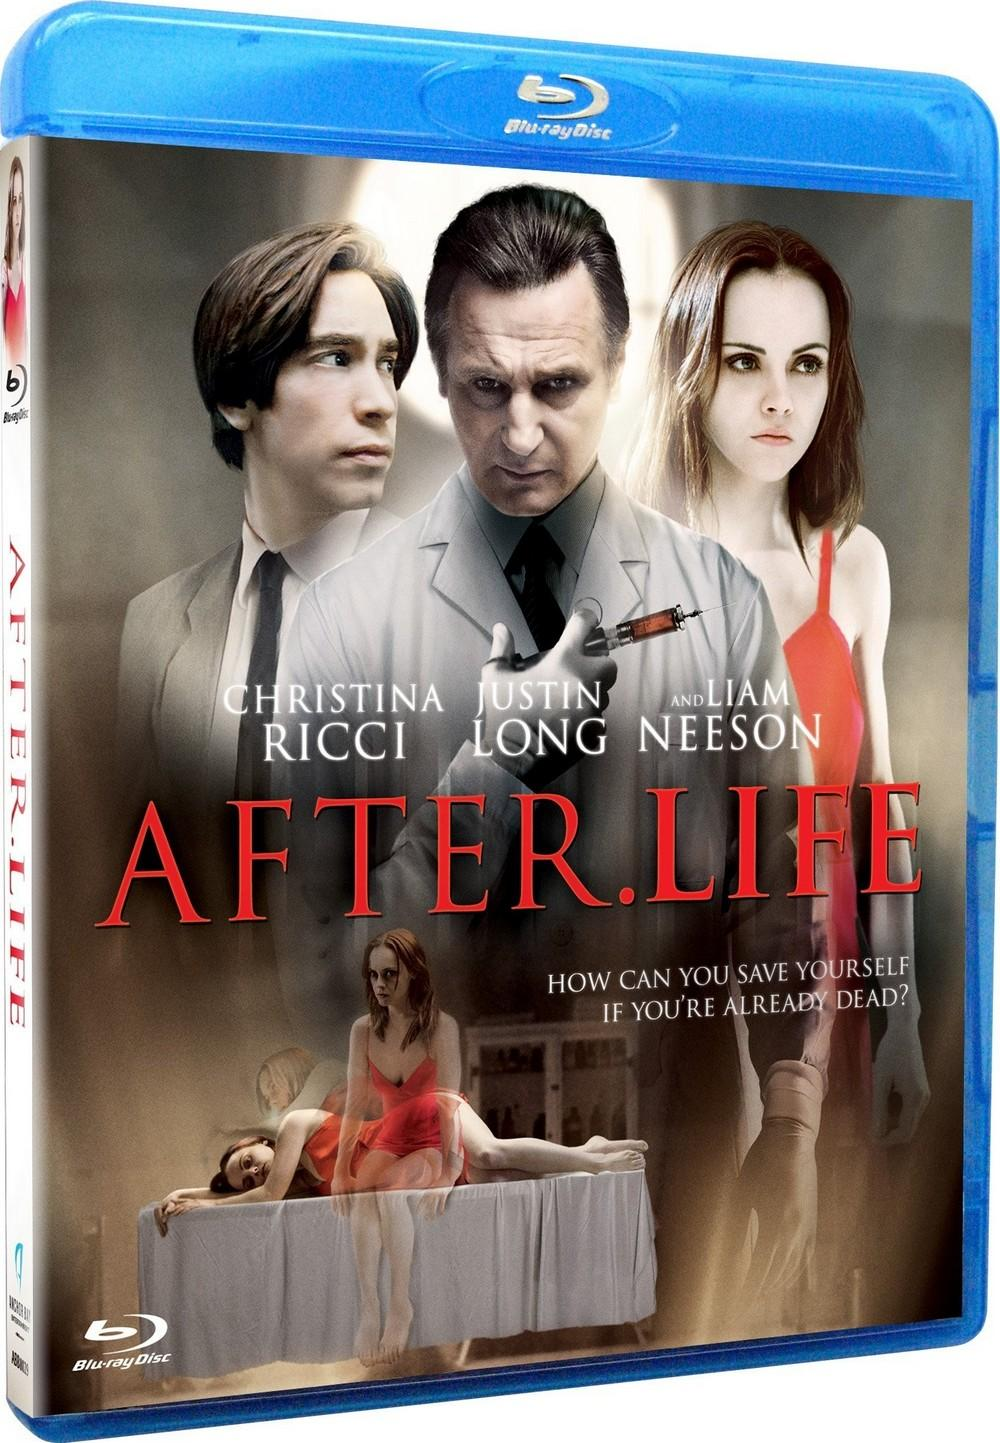 [MULTI] After.Life (2009) [FRENCH] [Blu-Ray 720p]